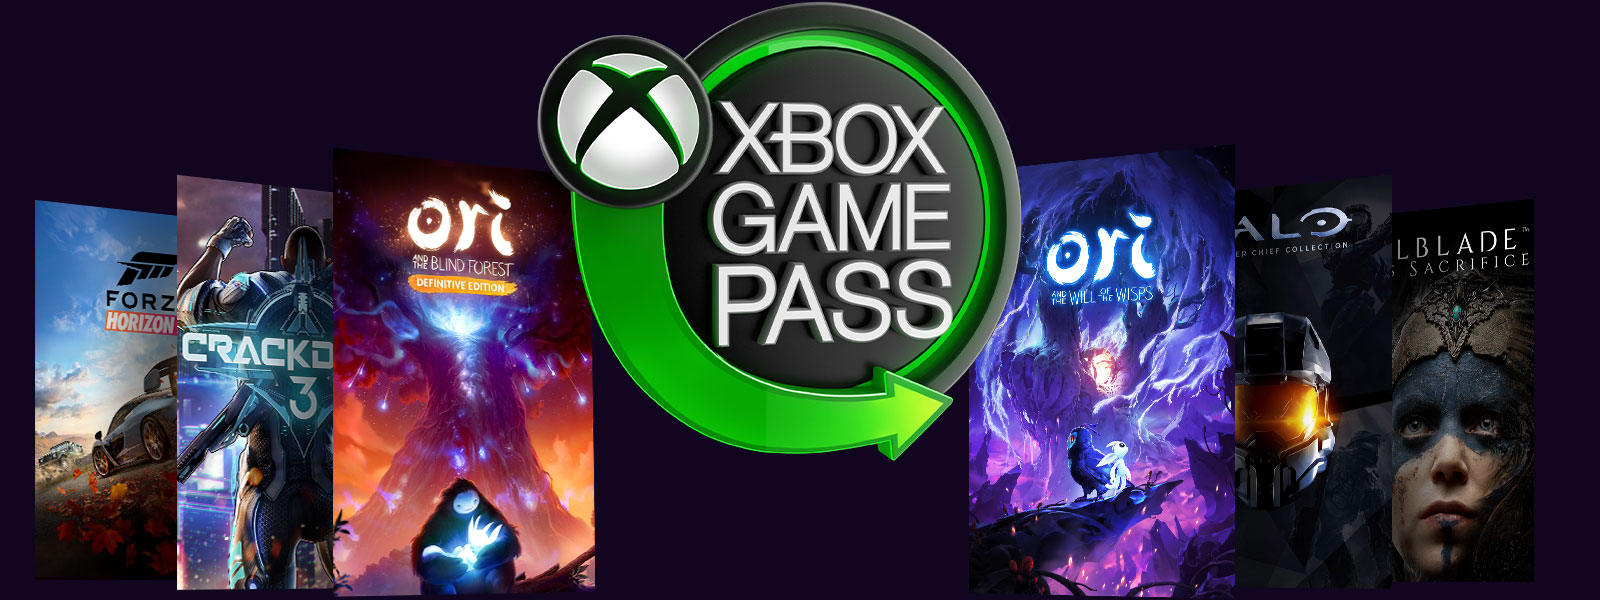 Logotipo de Xbox Game Pass con la imagen de la caja de Ori and the Will of the Wisps, Ori and the Blind Forest, Crackdown 3, Halo, Forza Horizon 4 y Hellblade